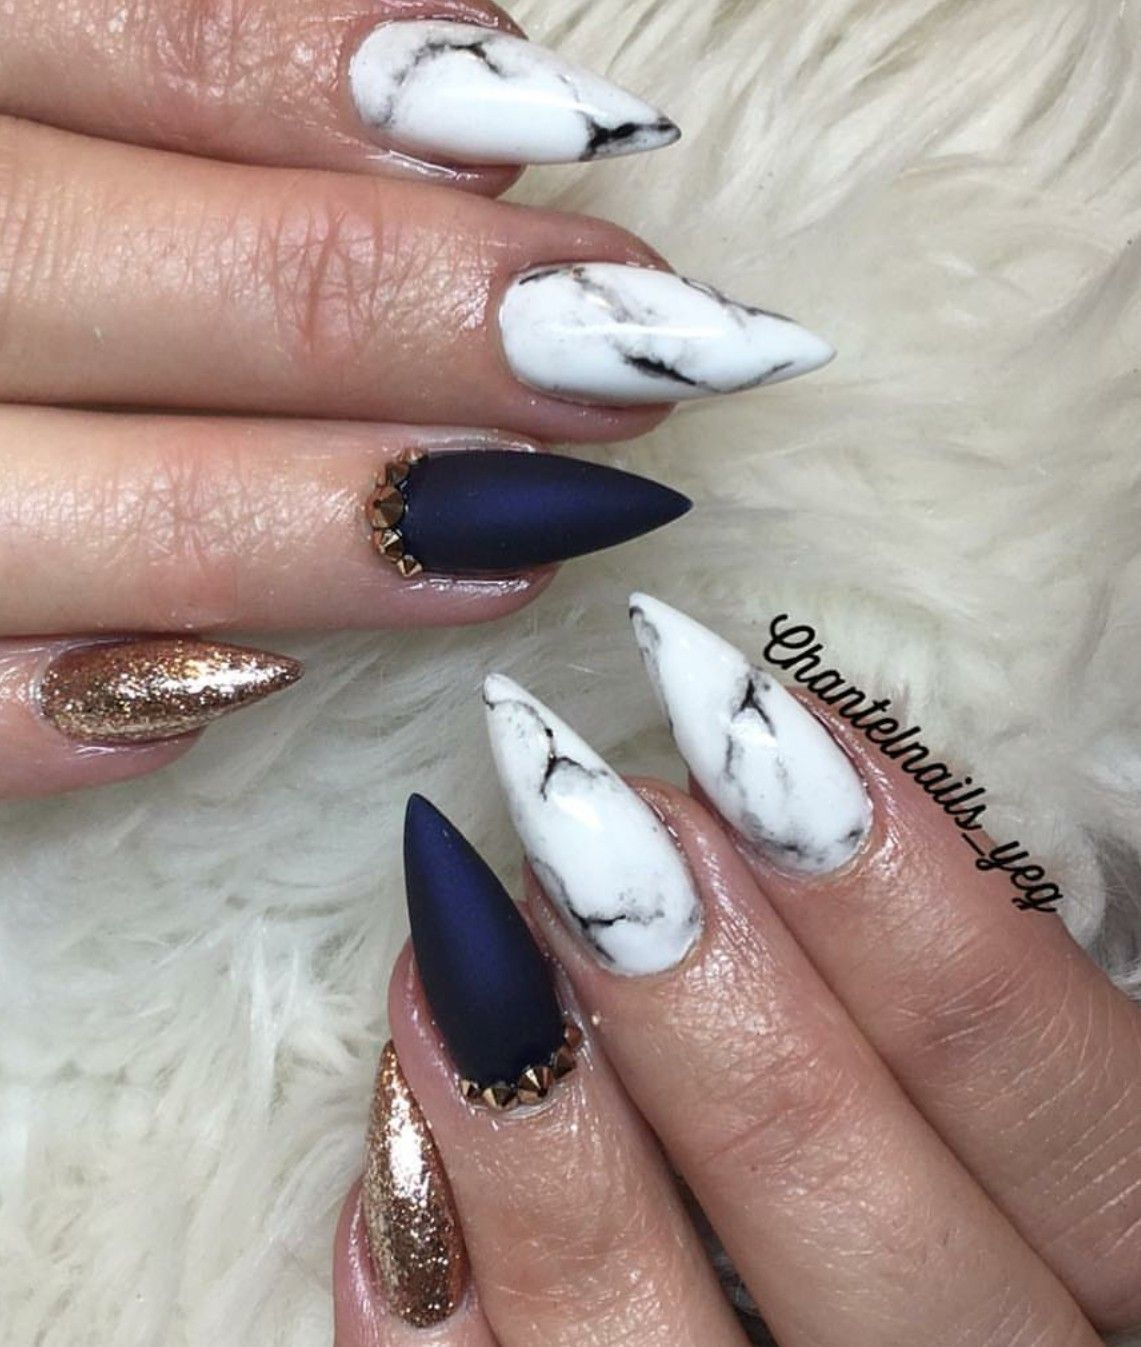 Almond Nails Marble Nails Blue And White Nails Gold Nails Acrylic Nails Fall Nails Almond Nails Gold Nails White Nails With Gold